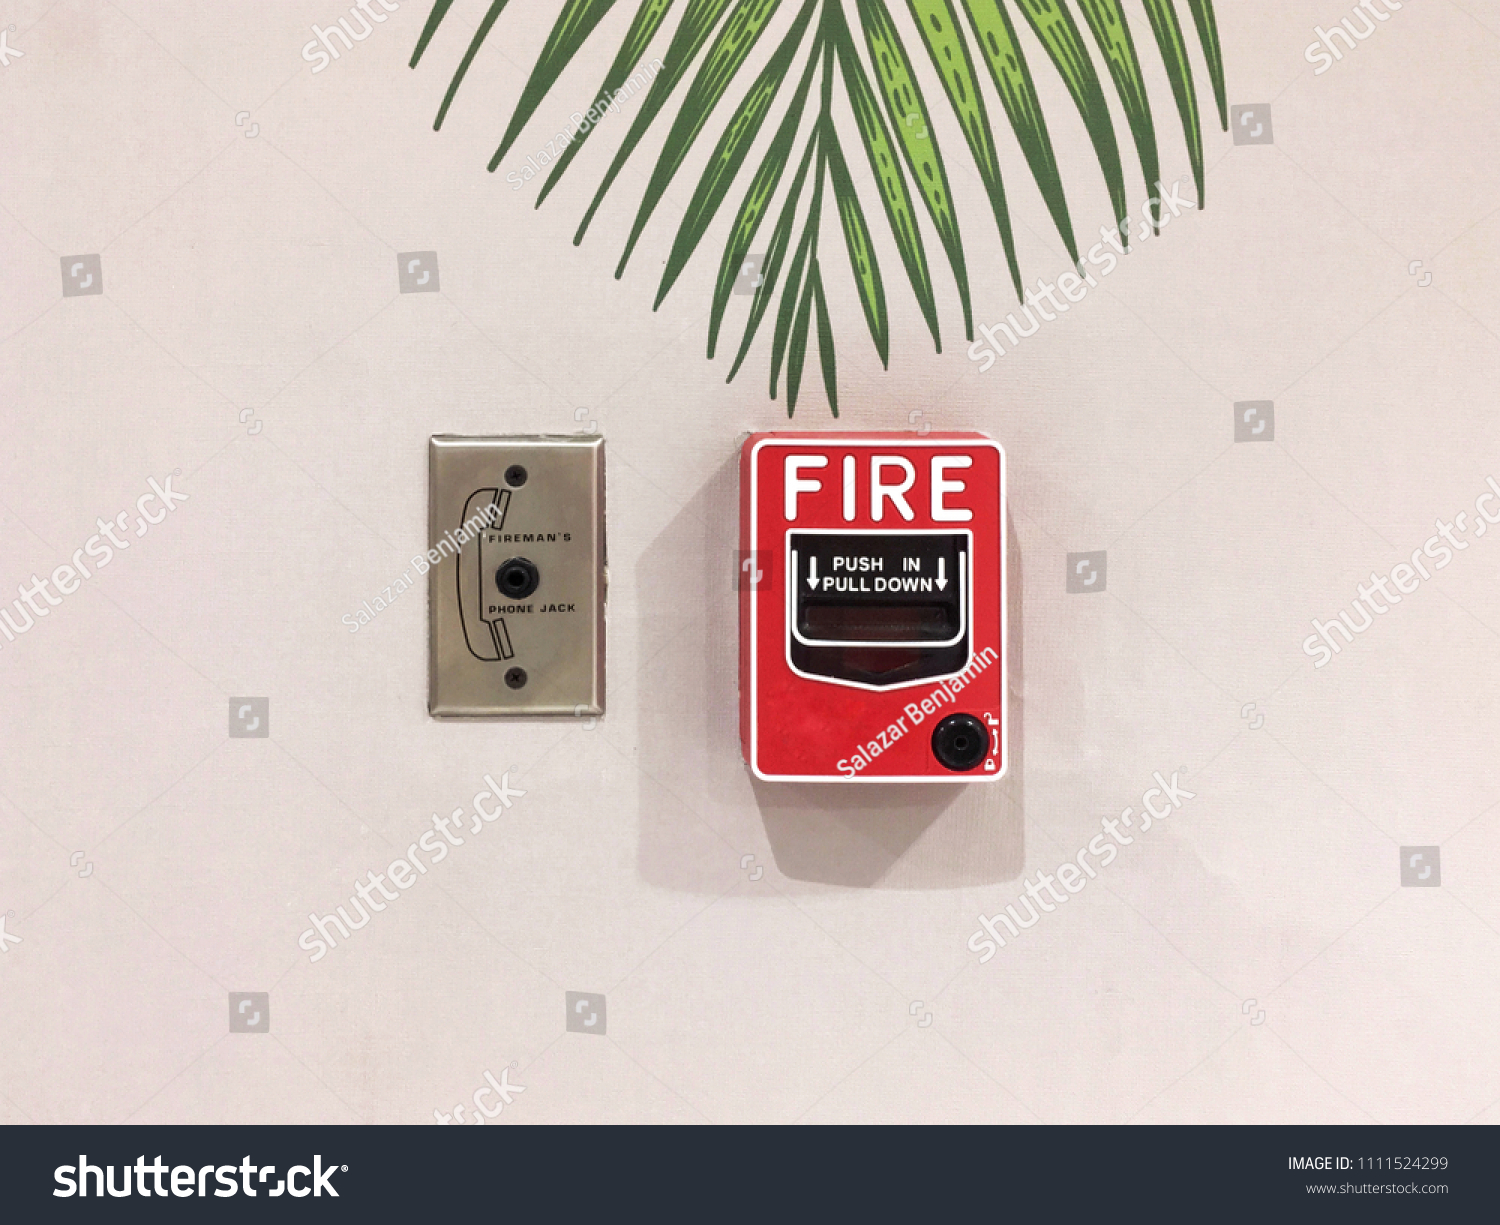 hight resolution of fire alarm notifier and fireman s phone jack on white wall in fire emergency system